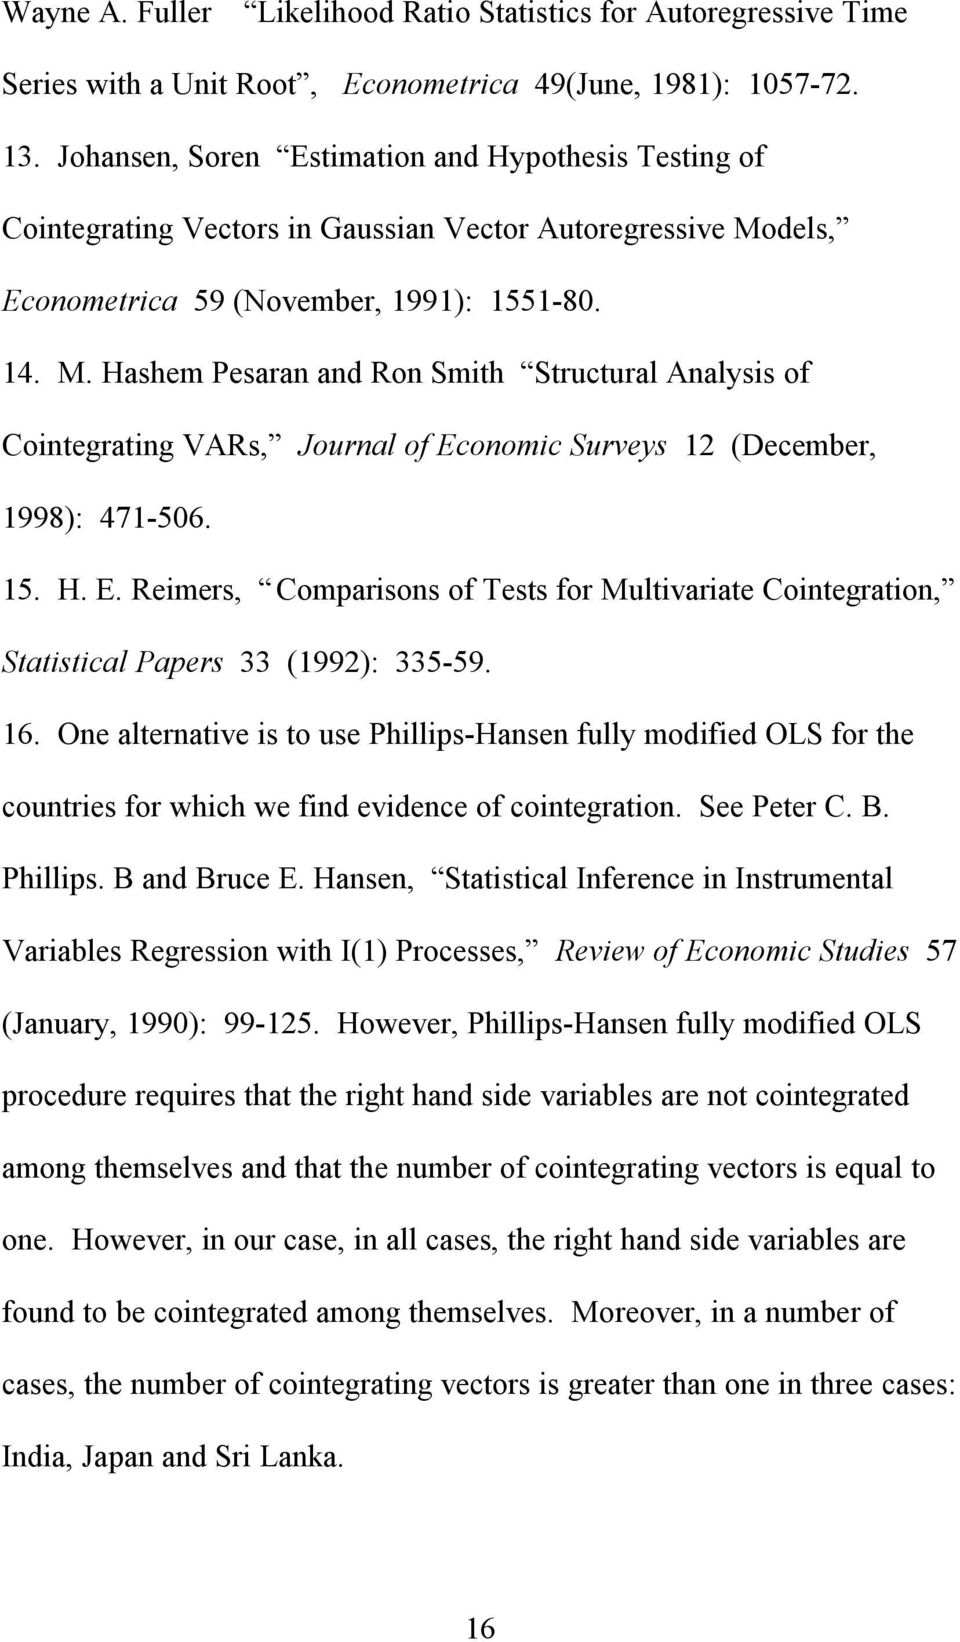 dels, Econometrica 59 (November, 1991): 1551-80. 14. M. Hashem Pesaran and Ron Smith Structural Analysis of Cointegrating VARs, Journal of Economic Surveys 12 (December, 1998): 471-506. 15. H. E. Reimers, Comparisons of Tests for Multivariate Cointegration, Statistical Papers 33 (1992): 335-59.